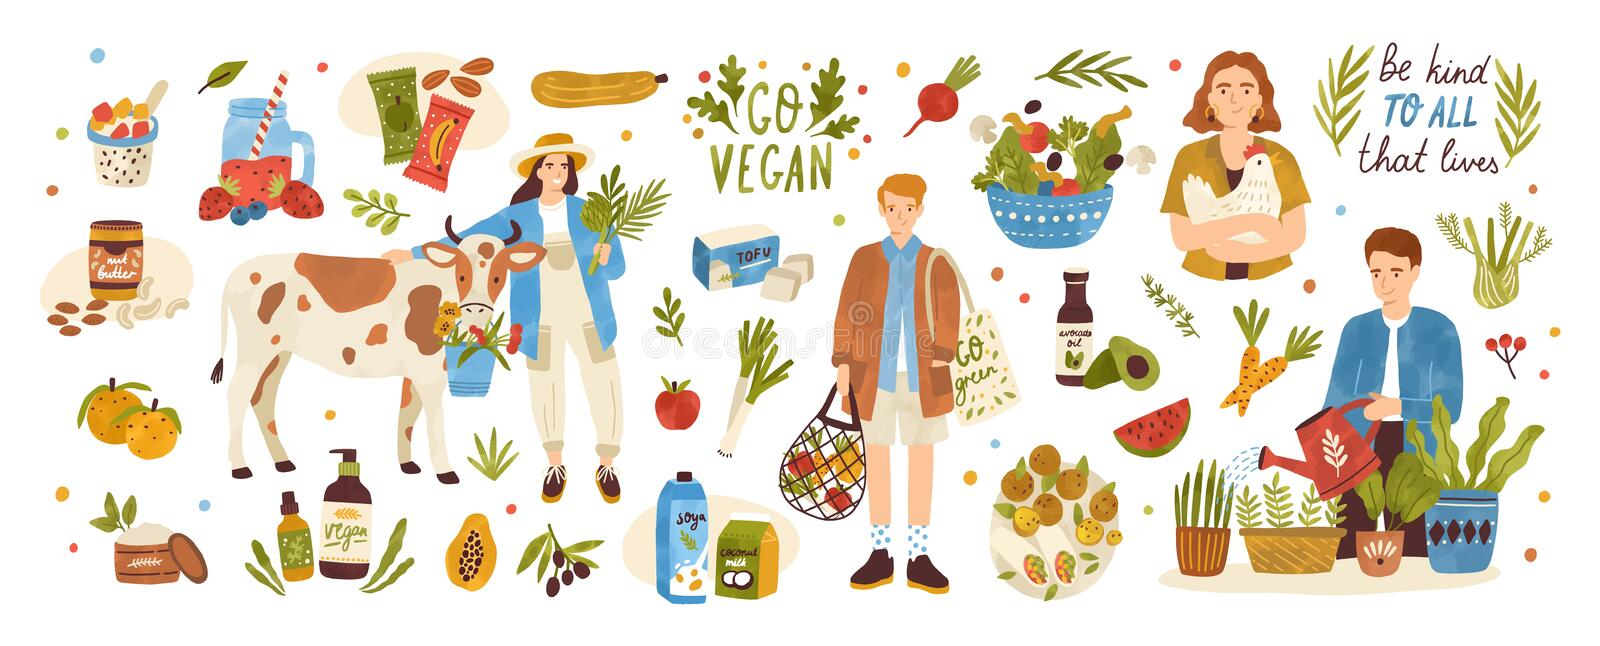 Collection of organic eco vegan products - natural cosmetics, vegetables, fruits, berries, tofu, nut butter, soy and. Coconut milk. Urban gardening and farming royalty free illustration